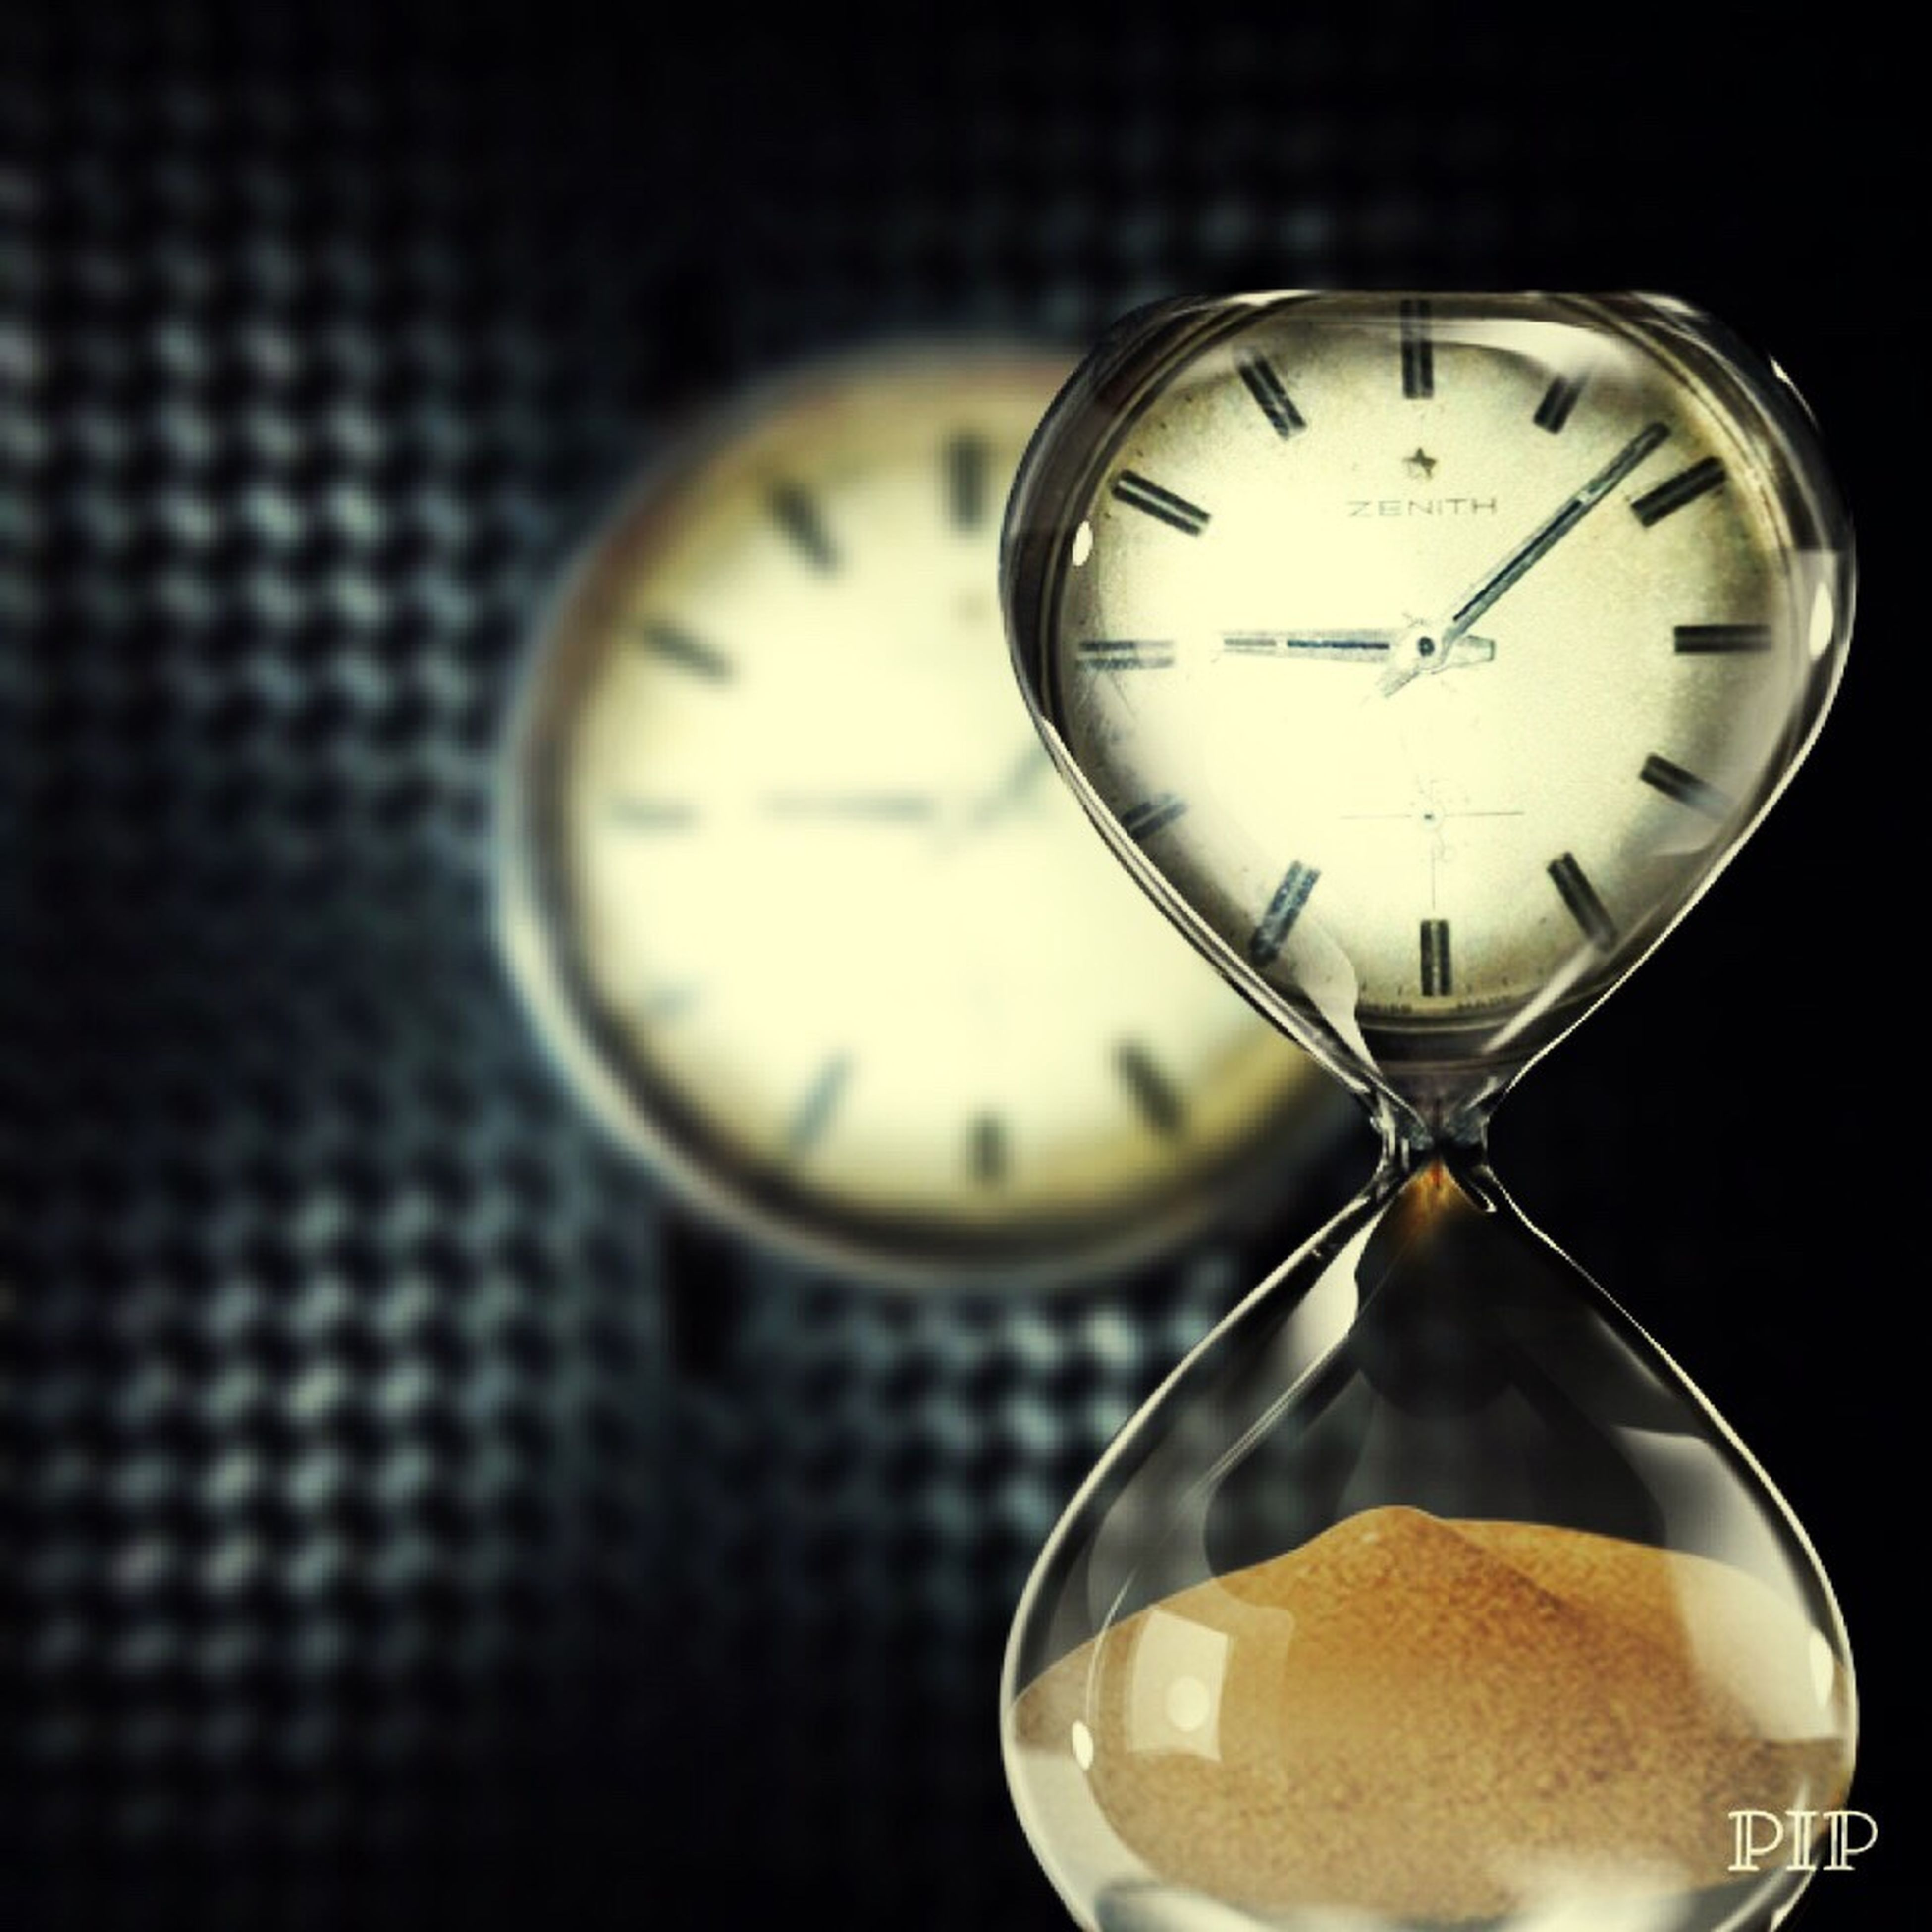 time, clock, instrument of time, accuracy, clock face, minute hand, roman numeral, hour hand, deadline, no people, close-up, antique, countdown, hourglass, watch, old-fashioned, alarm clock, indoors, midnight, day